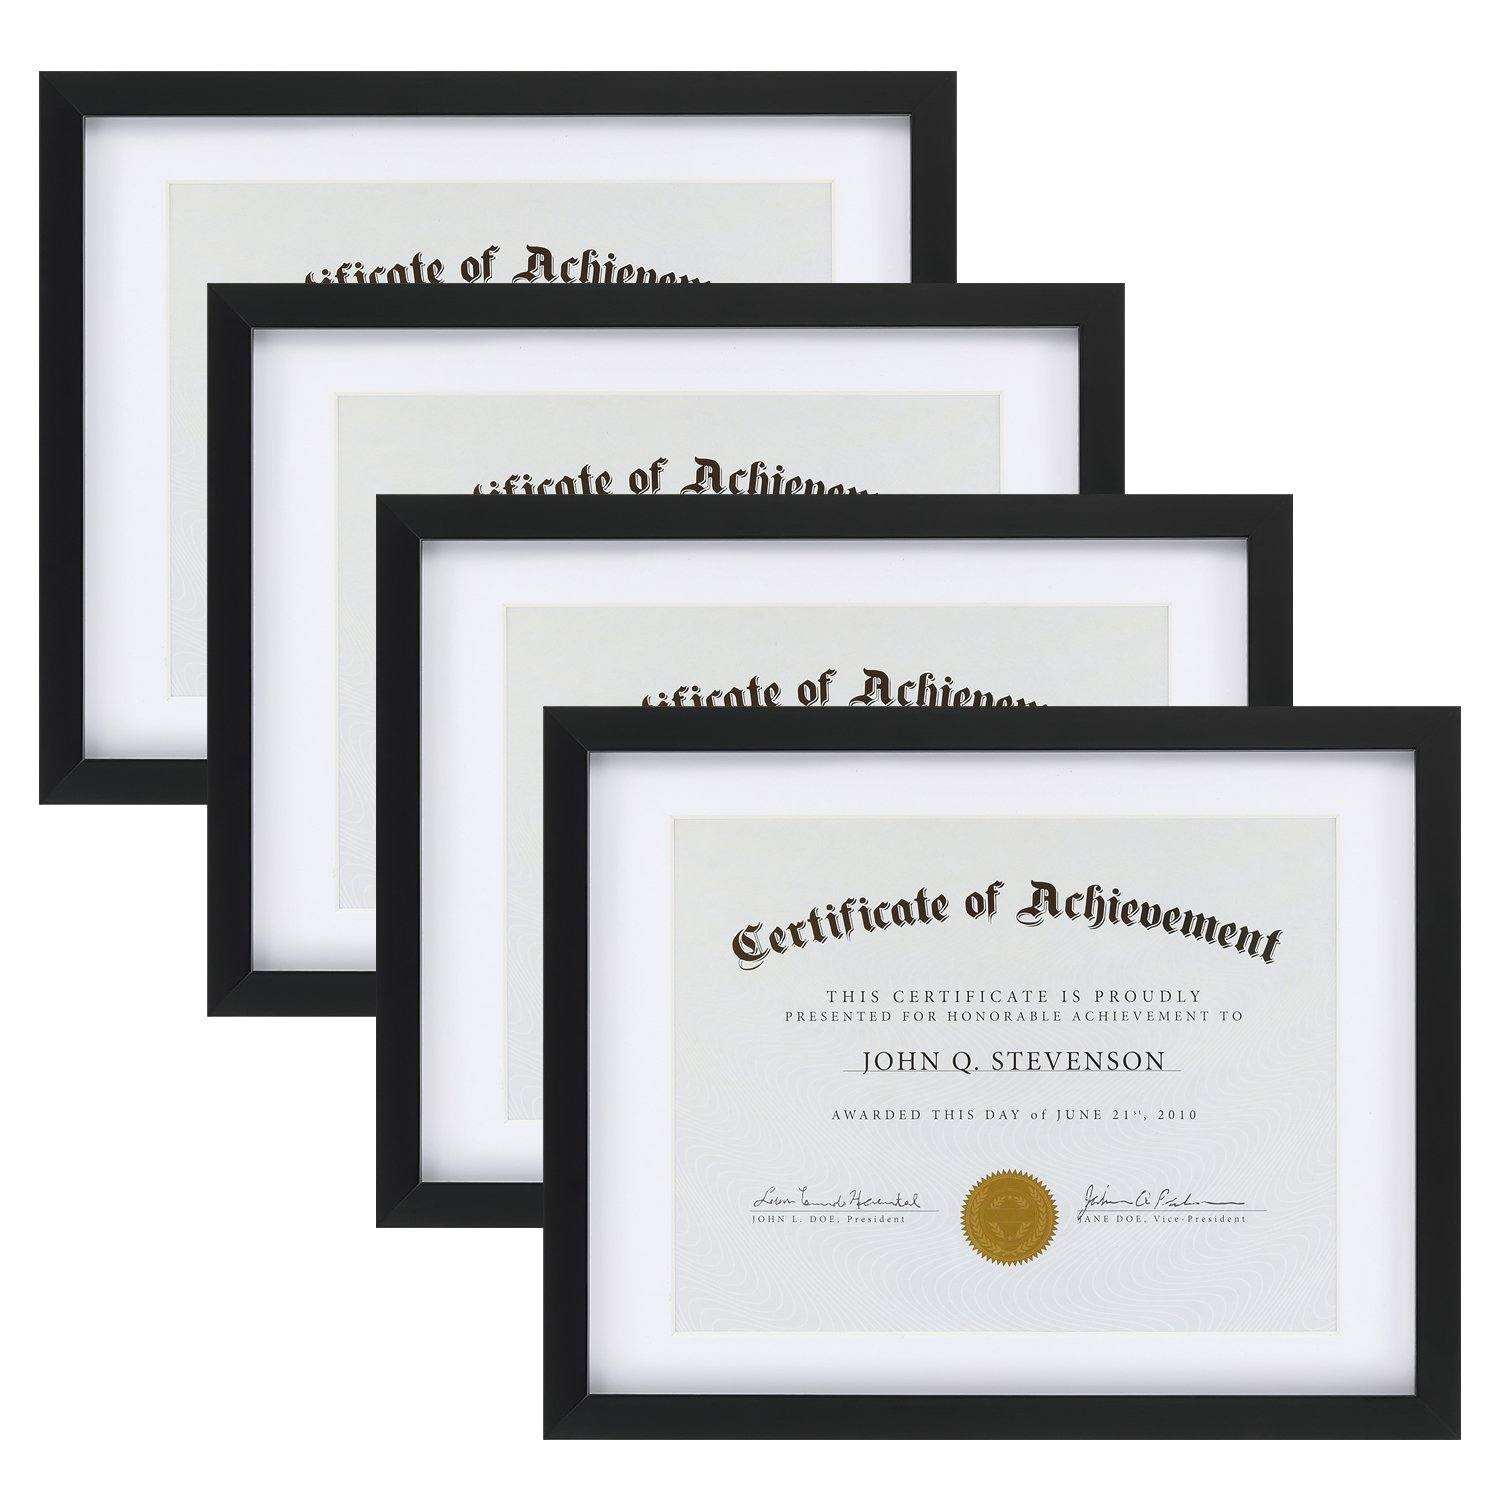 ONE WALL Tempered Glass 4PCS 11x14 Document Frame with 1 Mat for 8.5x11 Documents Certificate Diploma, Black Wood Picture Photo Frame - Mounting Hardware Included